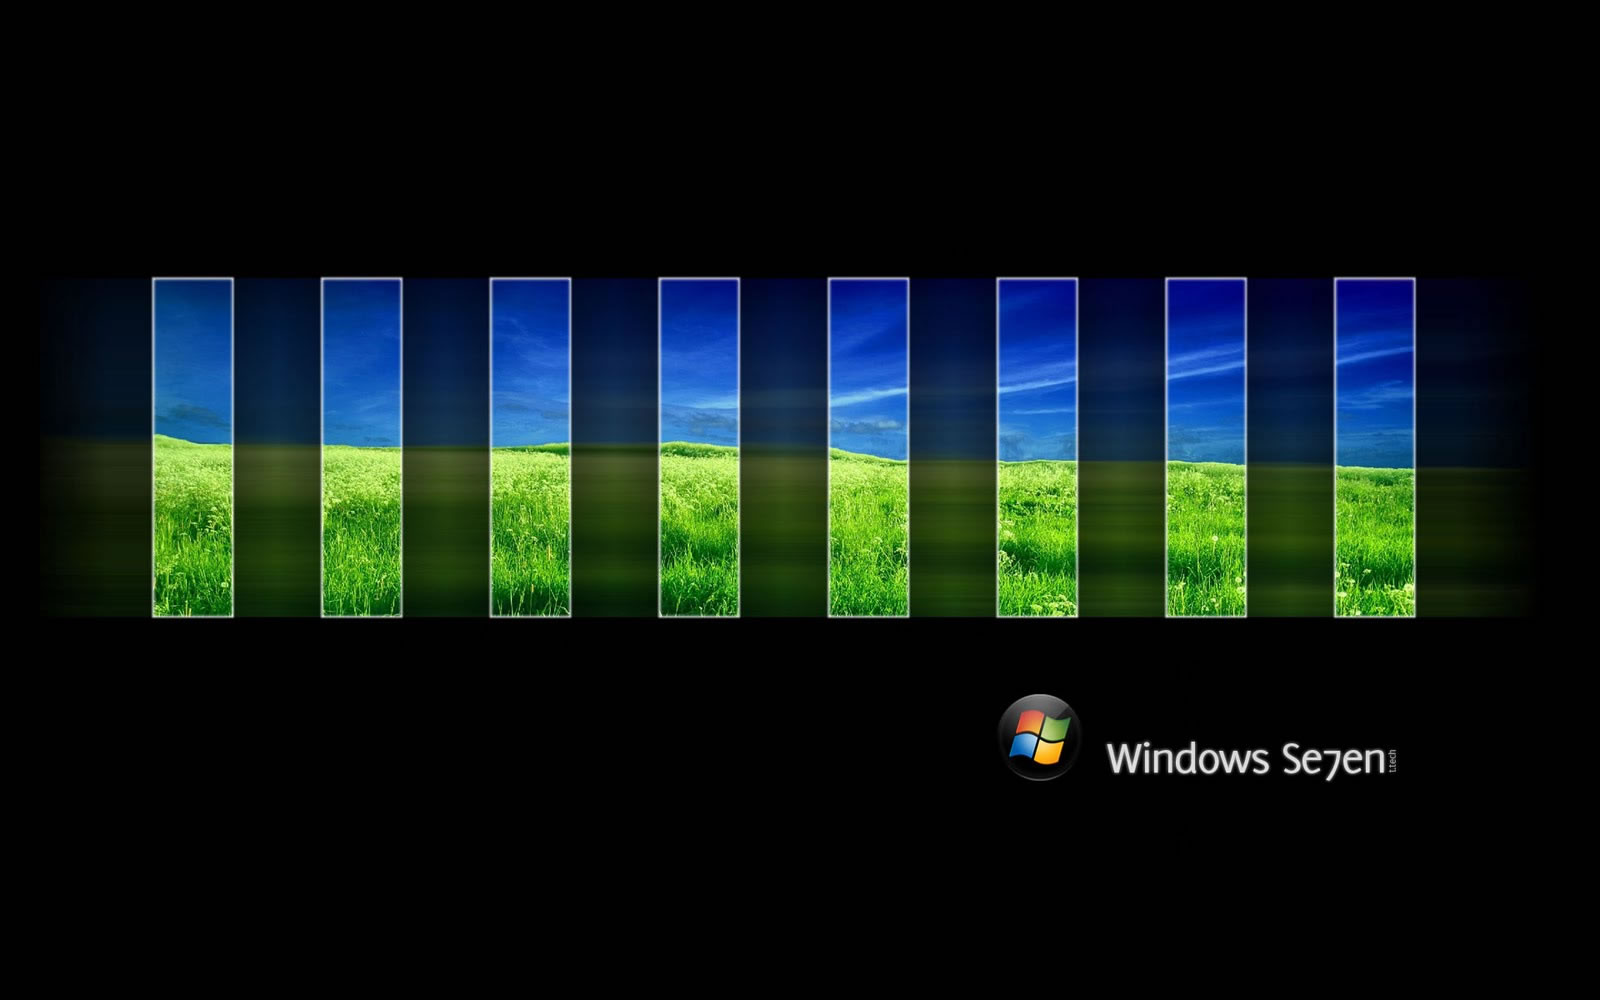 Wallpapershdsize windows 7 latest high quality wallpapers for High quality windows